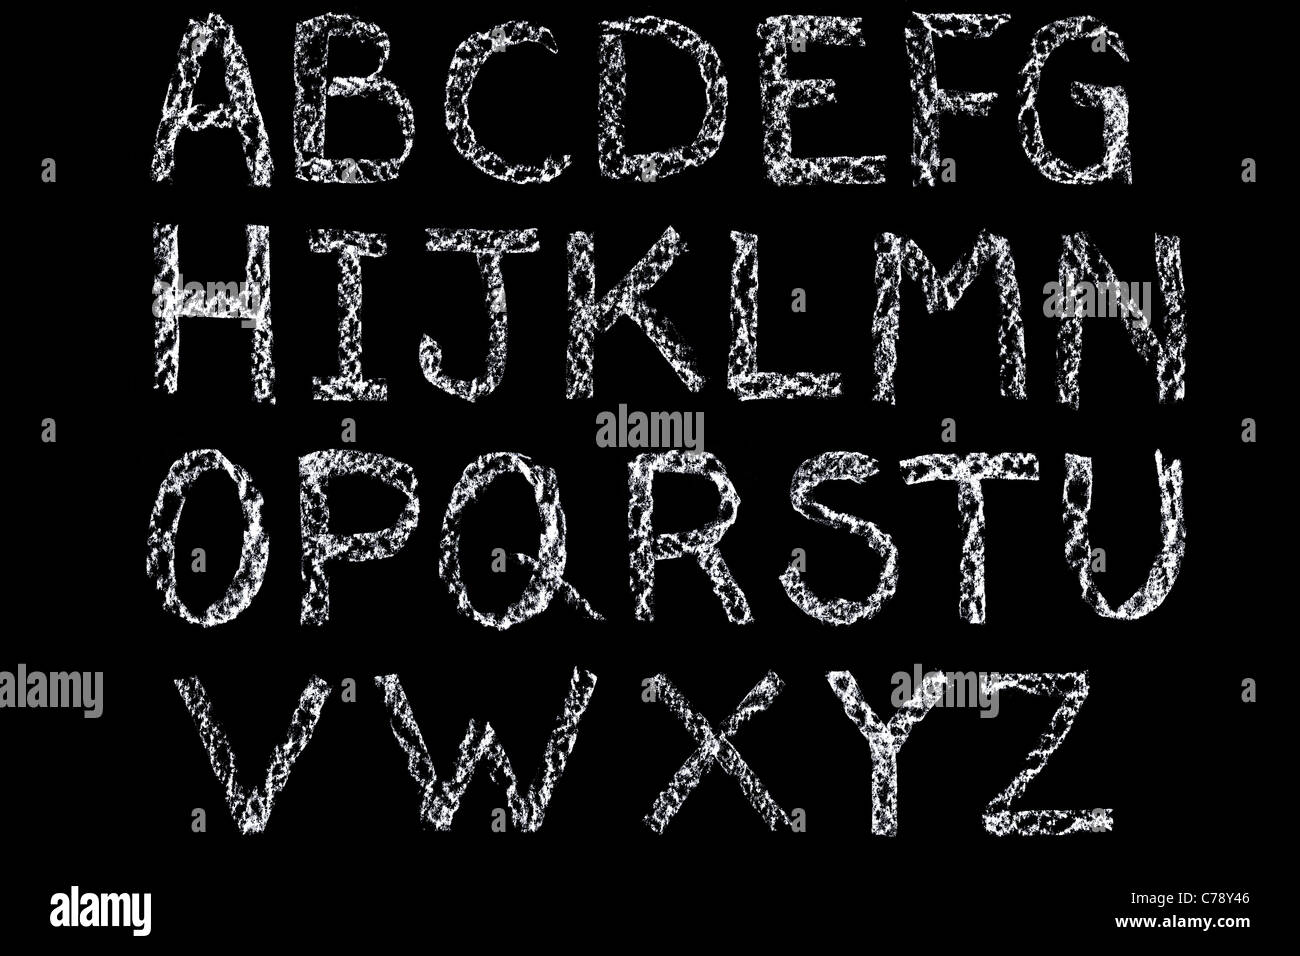 Handwritten letters of the alphabet written on a blackboard in white chalk then cleaned up during editing - Stock Image